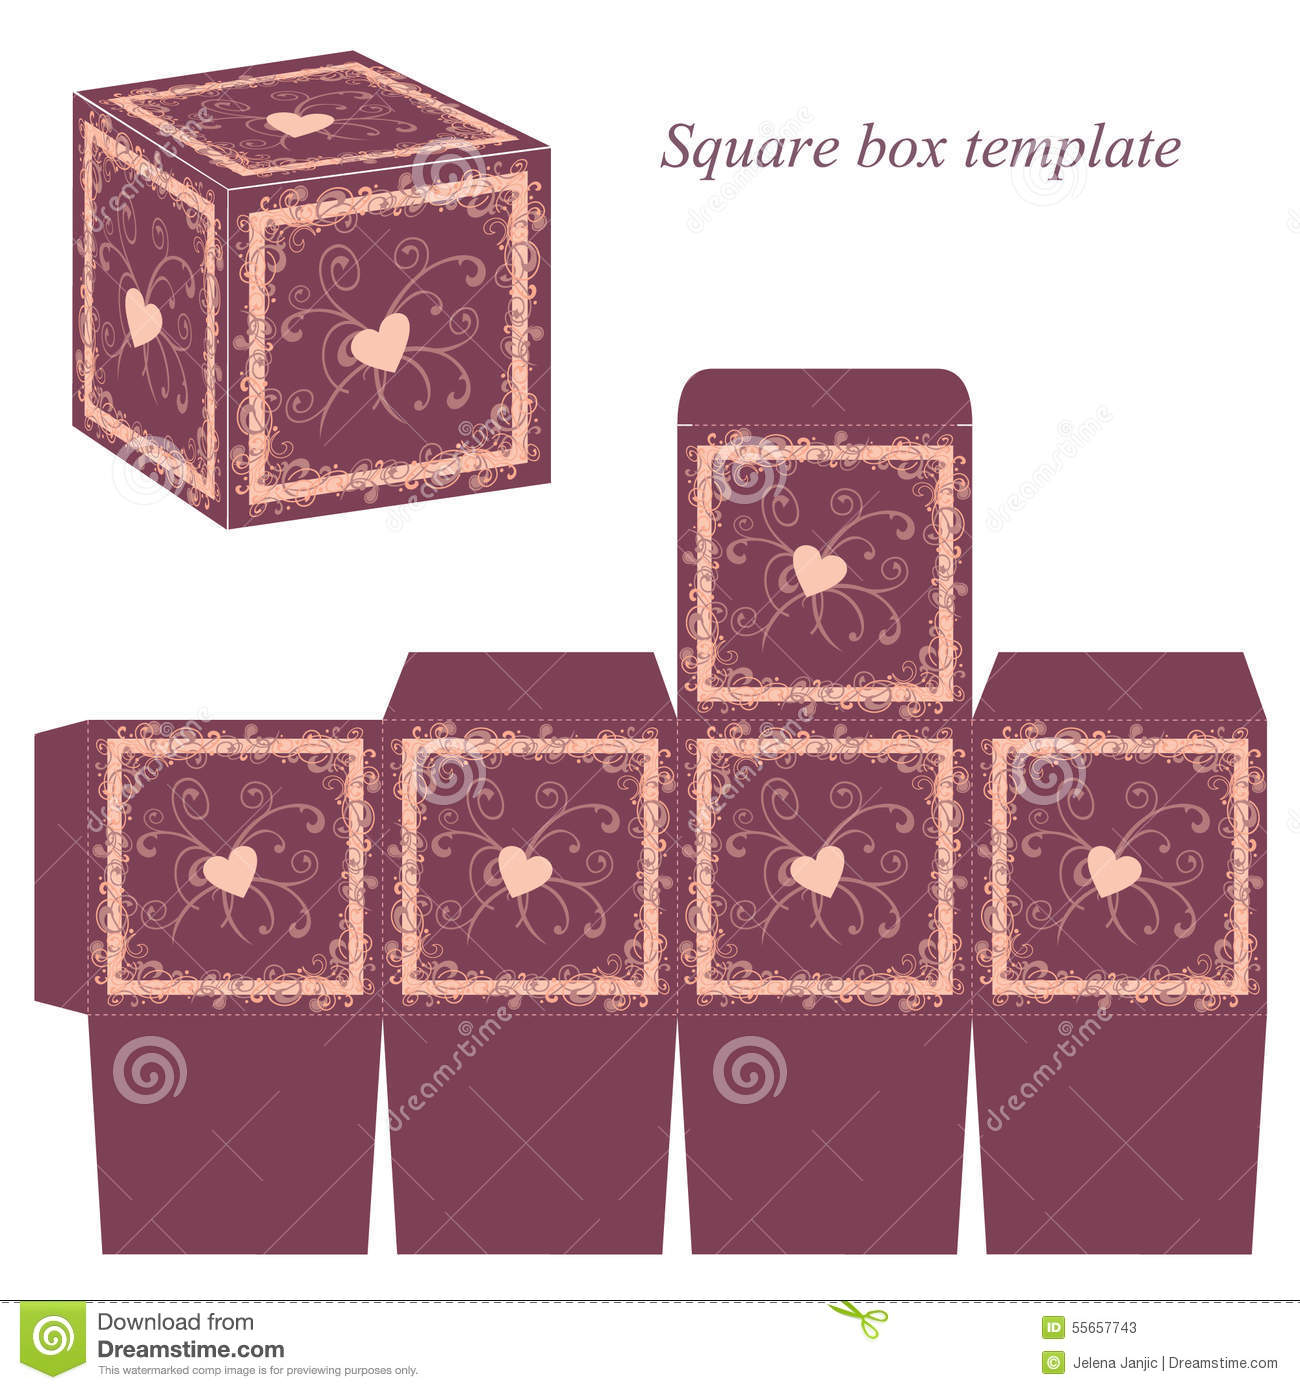 Decorative Boxes Templates : Box template with decorative borders and hearts stock